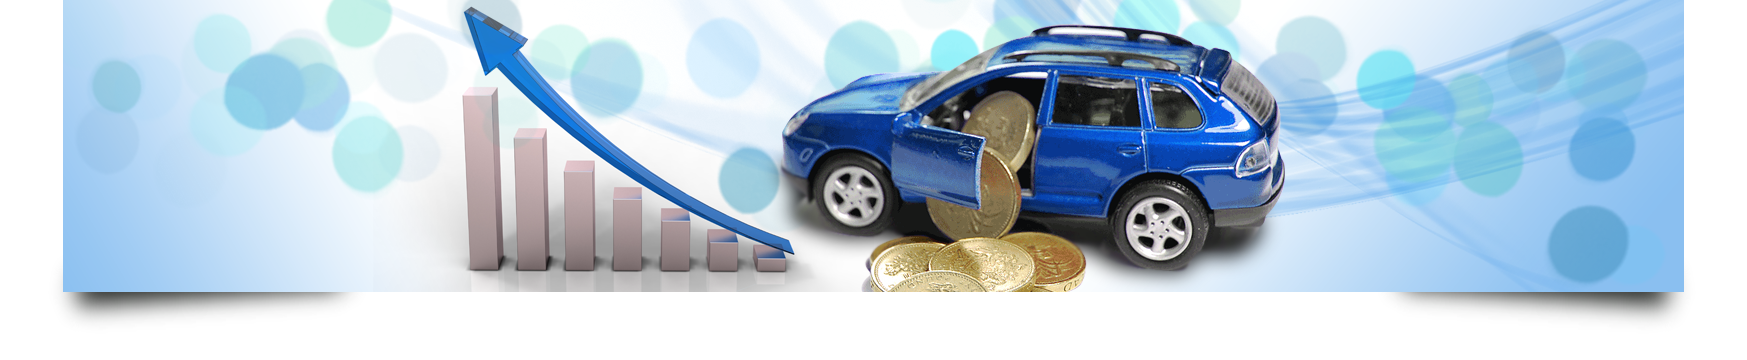 Importance of Car Valuation